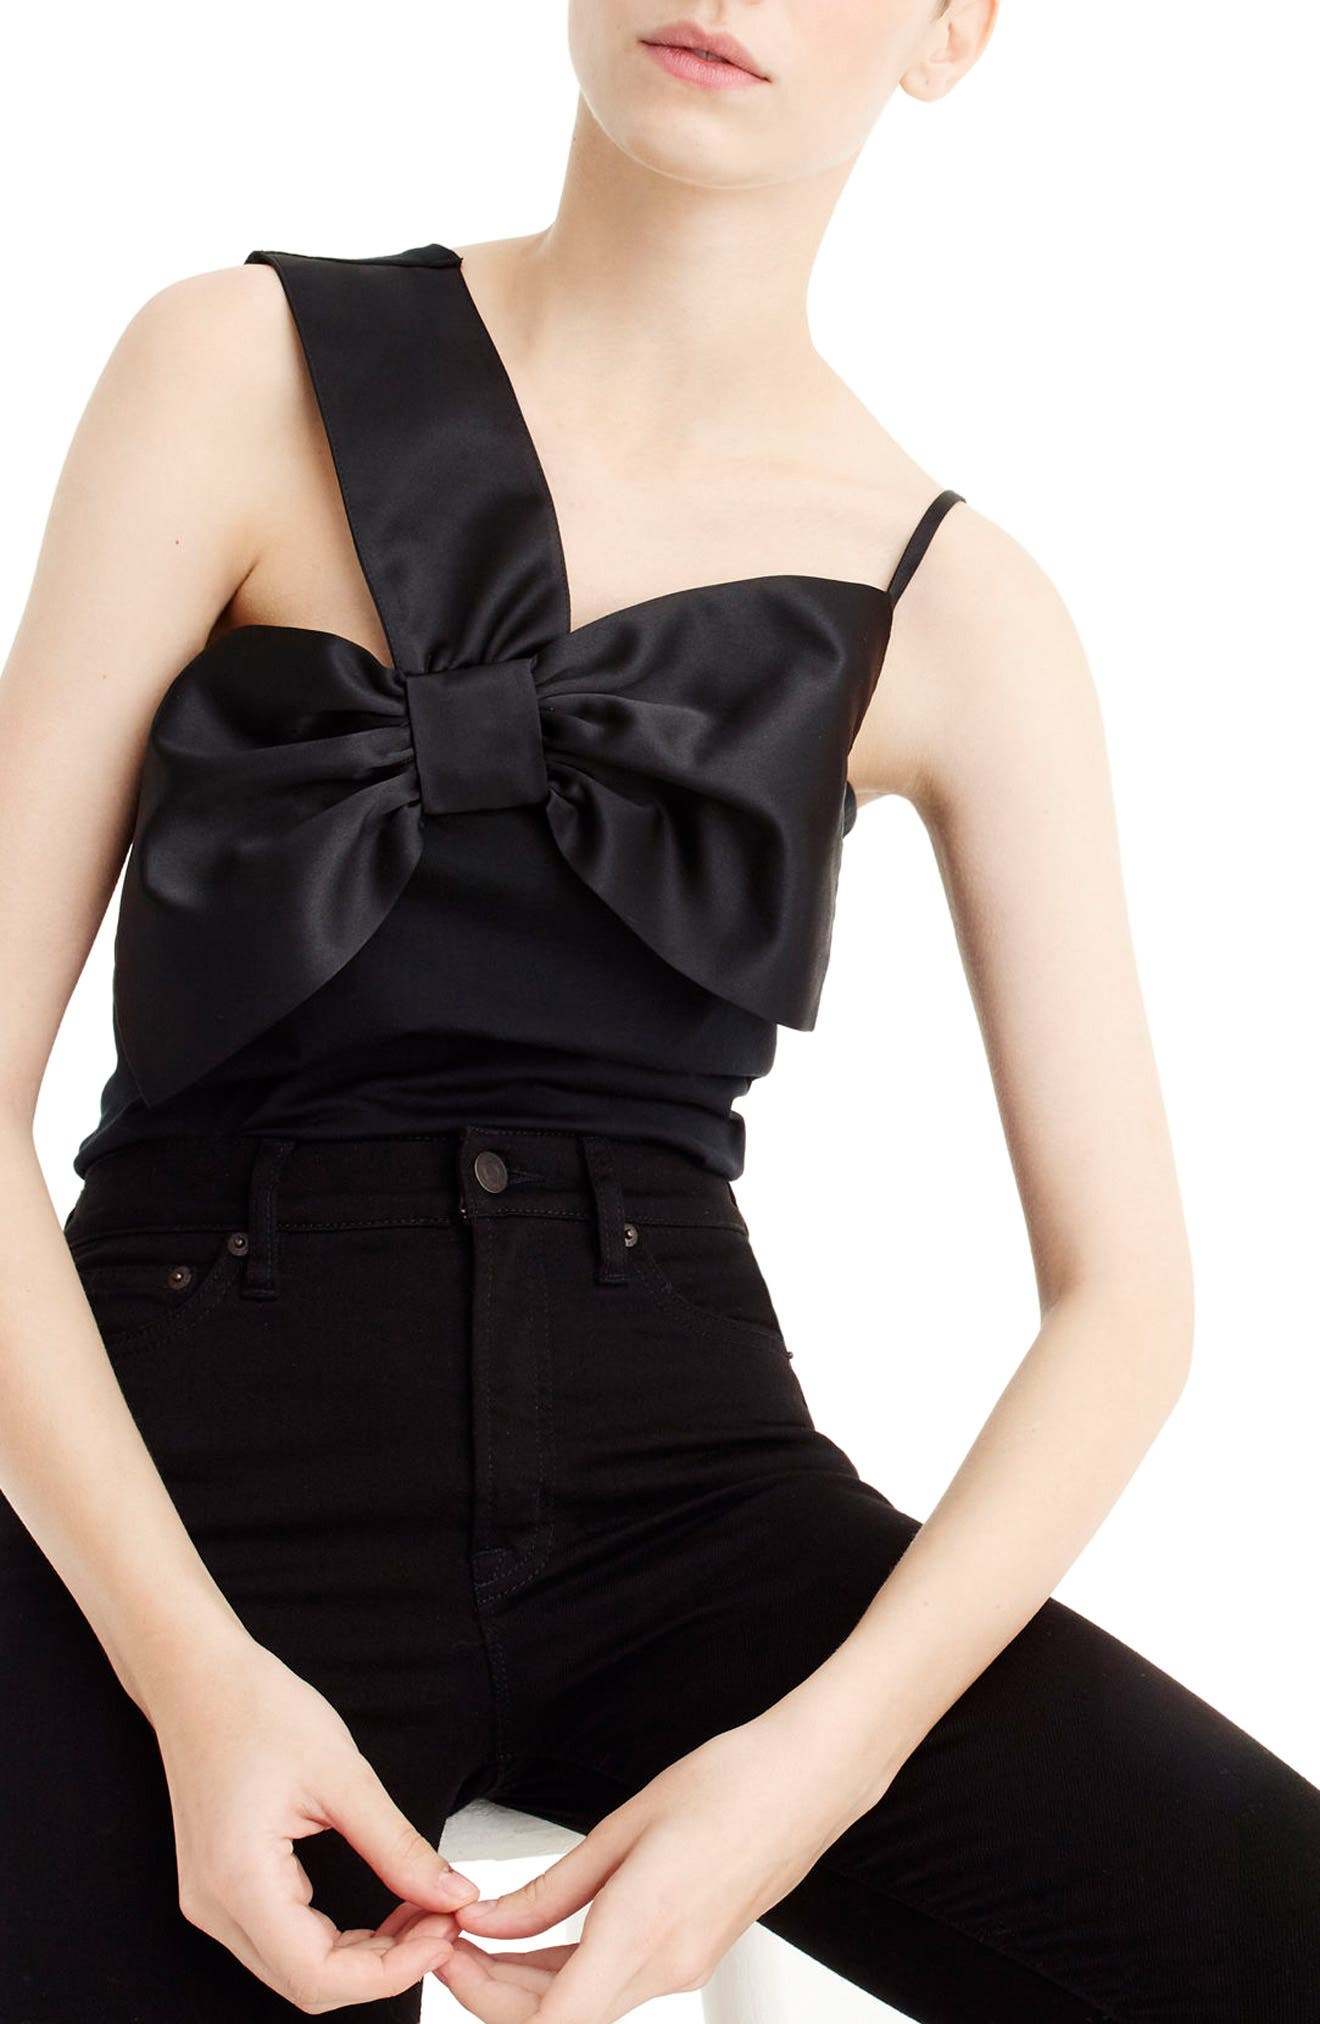 Alternate Image 1 Selected - J.Crew Asymmetrical Bow Top